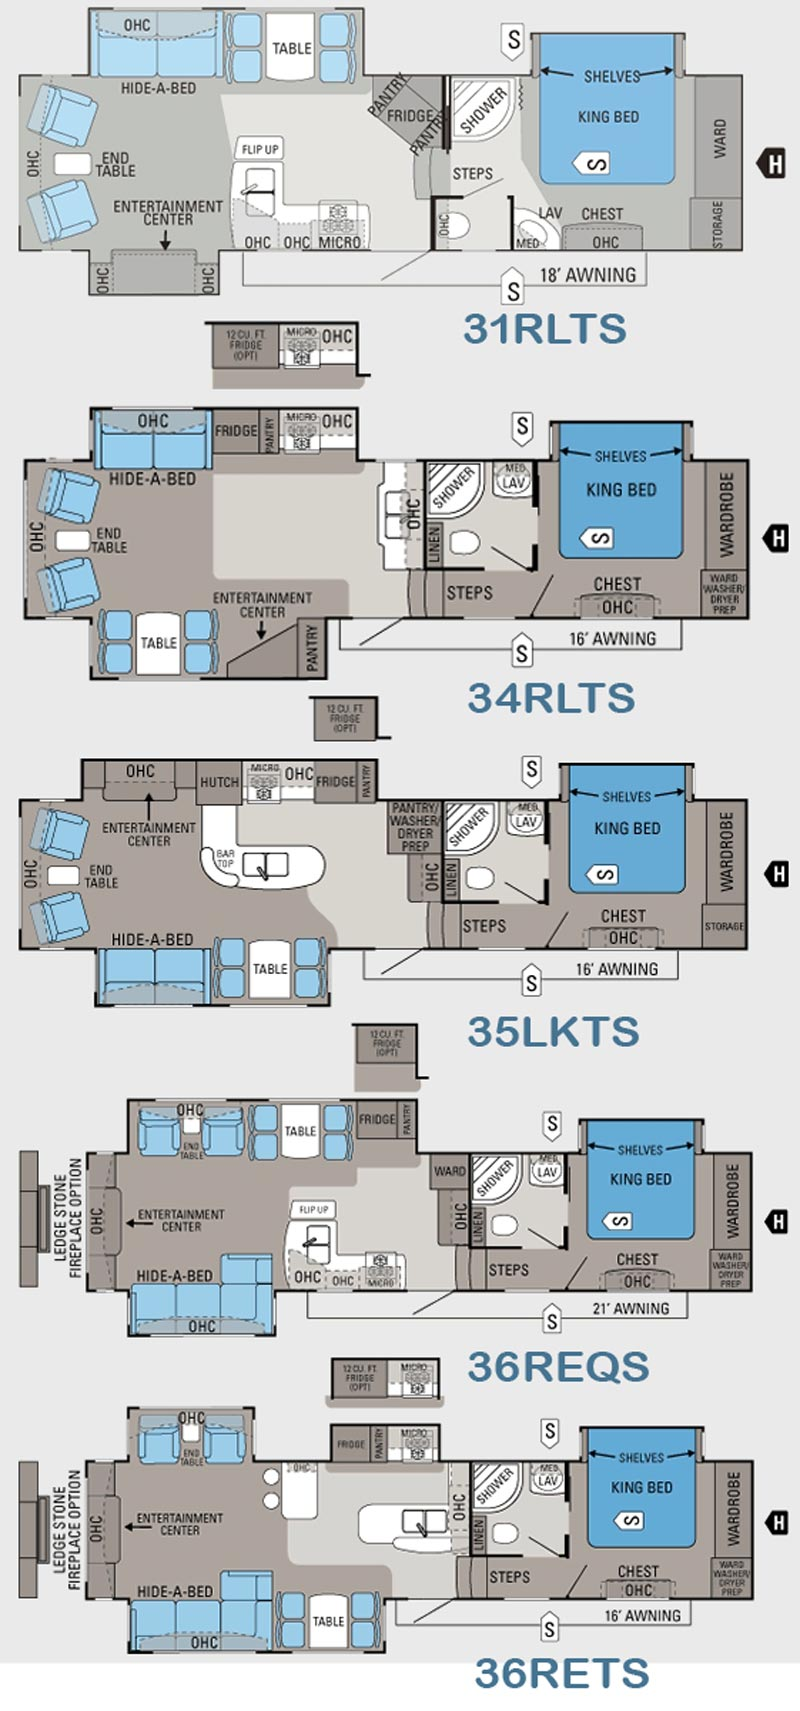 Innovative Built For RV Enthusiasts, The Eagle Brand Features The Towablefriendly Eagle HT Fifth Wheel, Jaycos Comfortpacked Eagle Fifth Wheel And The Amenityfilled Eagle Travel Trailer A Familyfavorite Fifth Wheel Available In Ten Floor Plans,